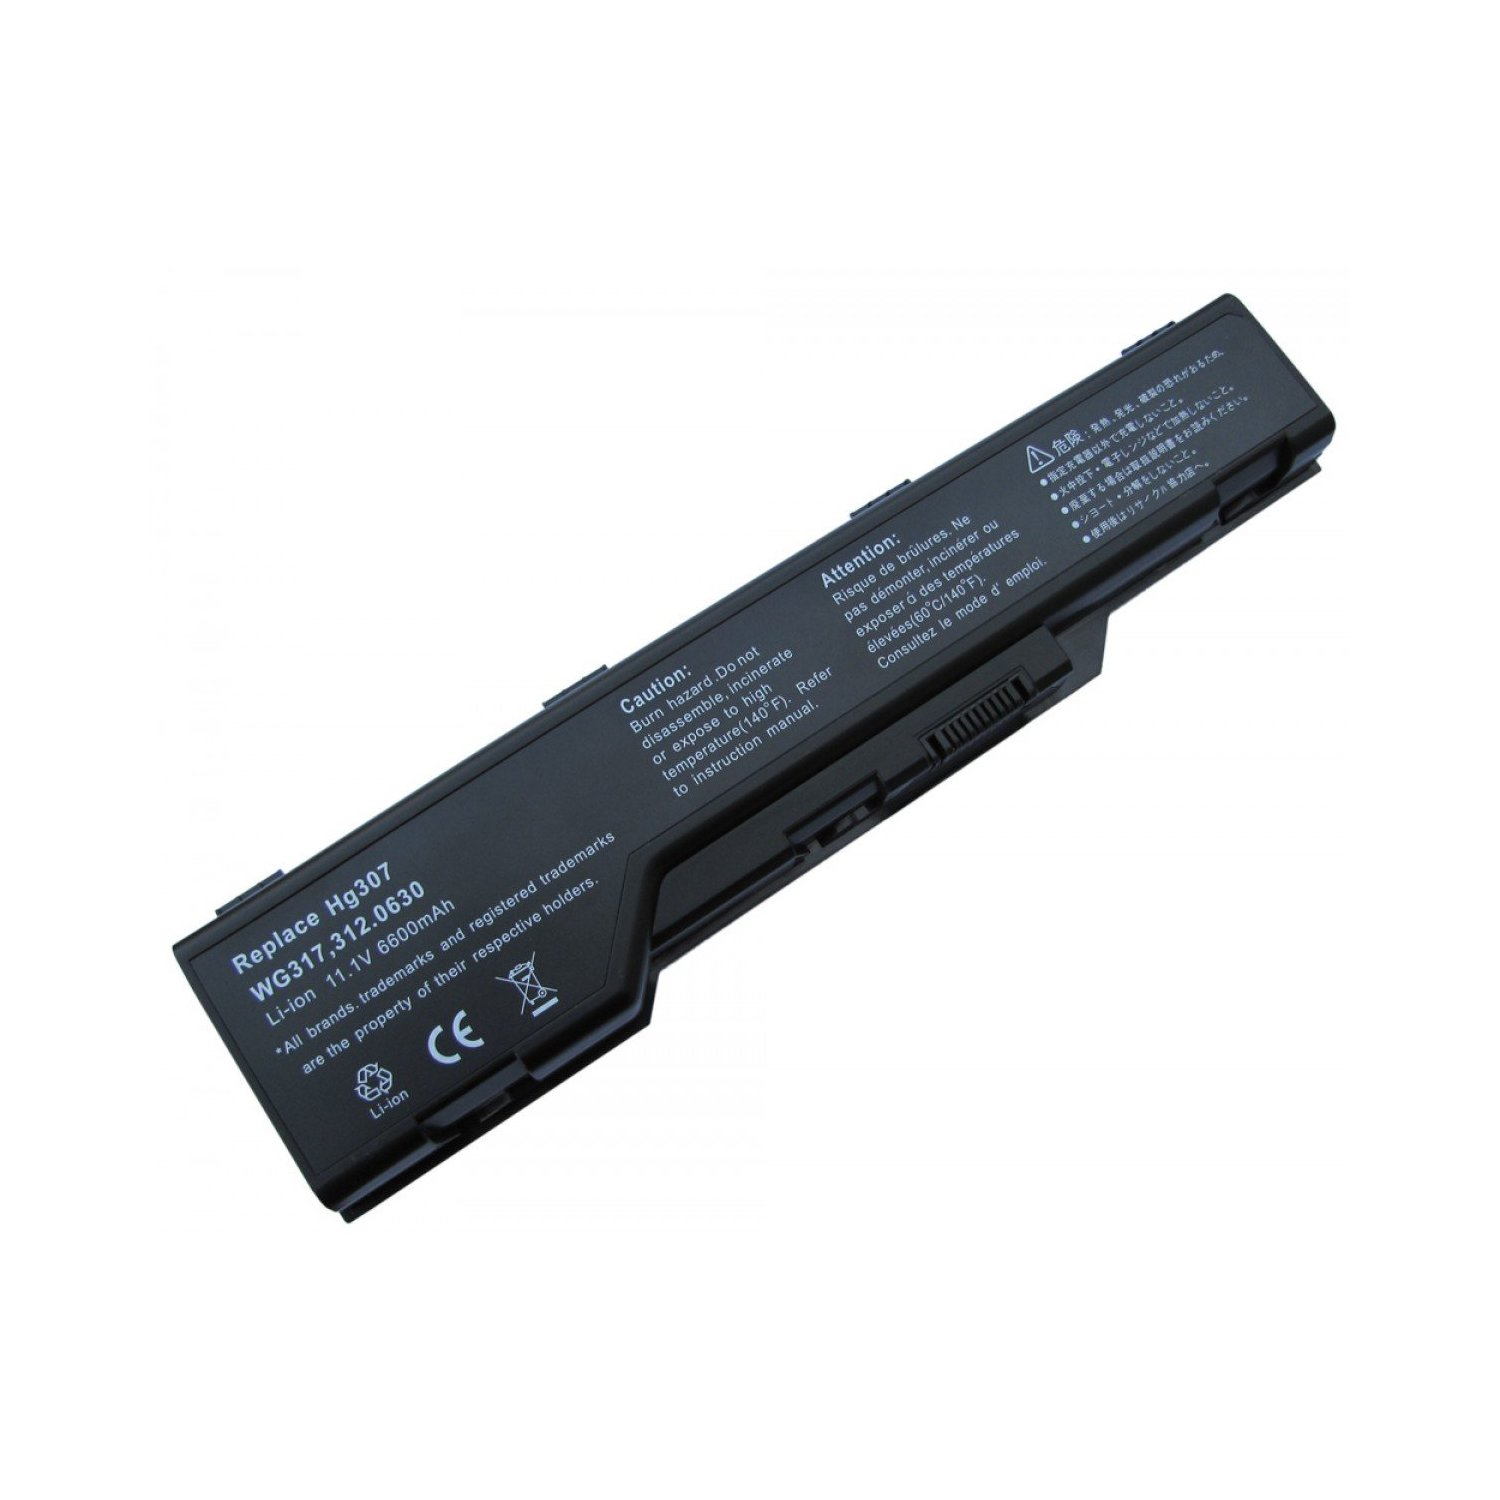 Dell-XPS M1730 Series-9 Cell: Laptop Battery 9-cell compatible with DELL XPS M1730 Replacement for HG307 XG510 0XG510 WG317 312-0680